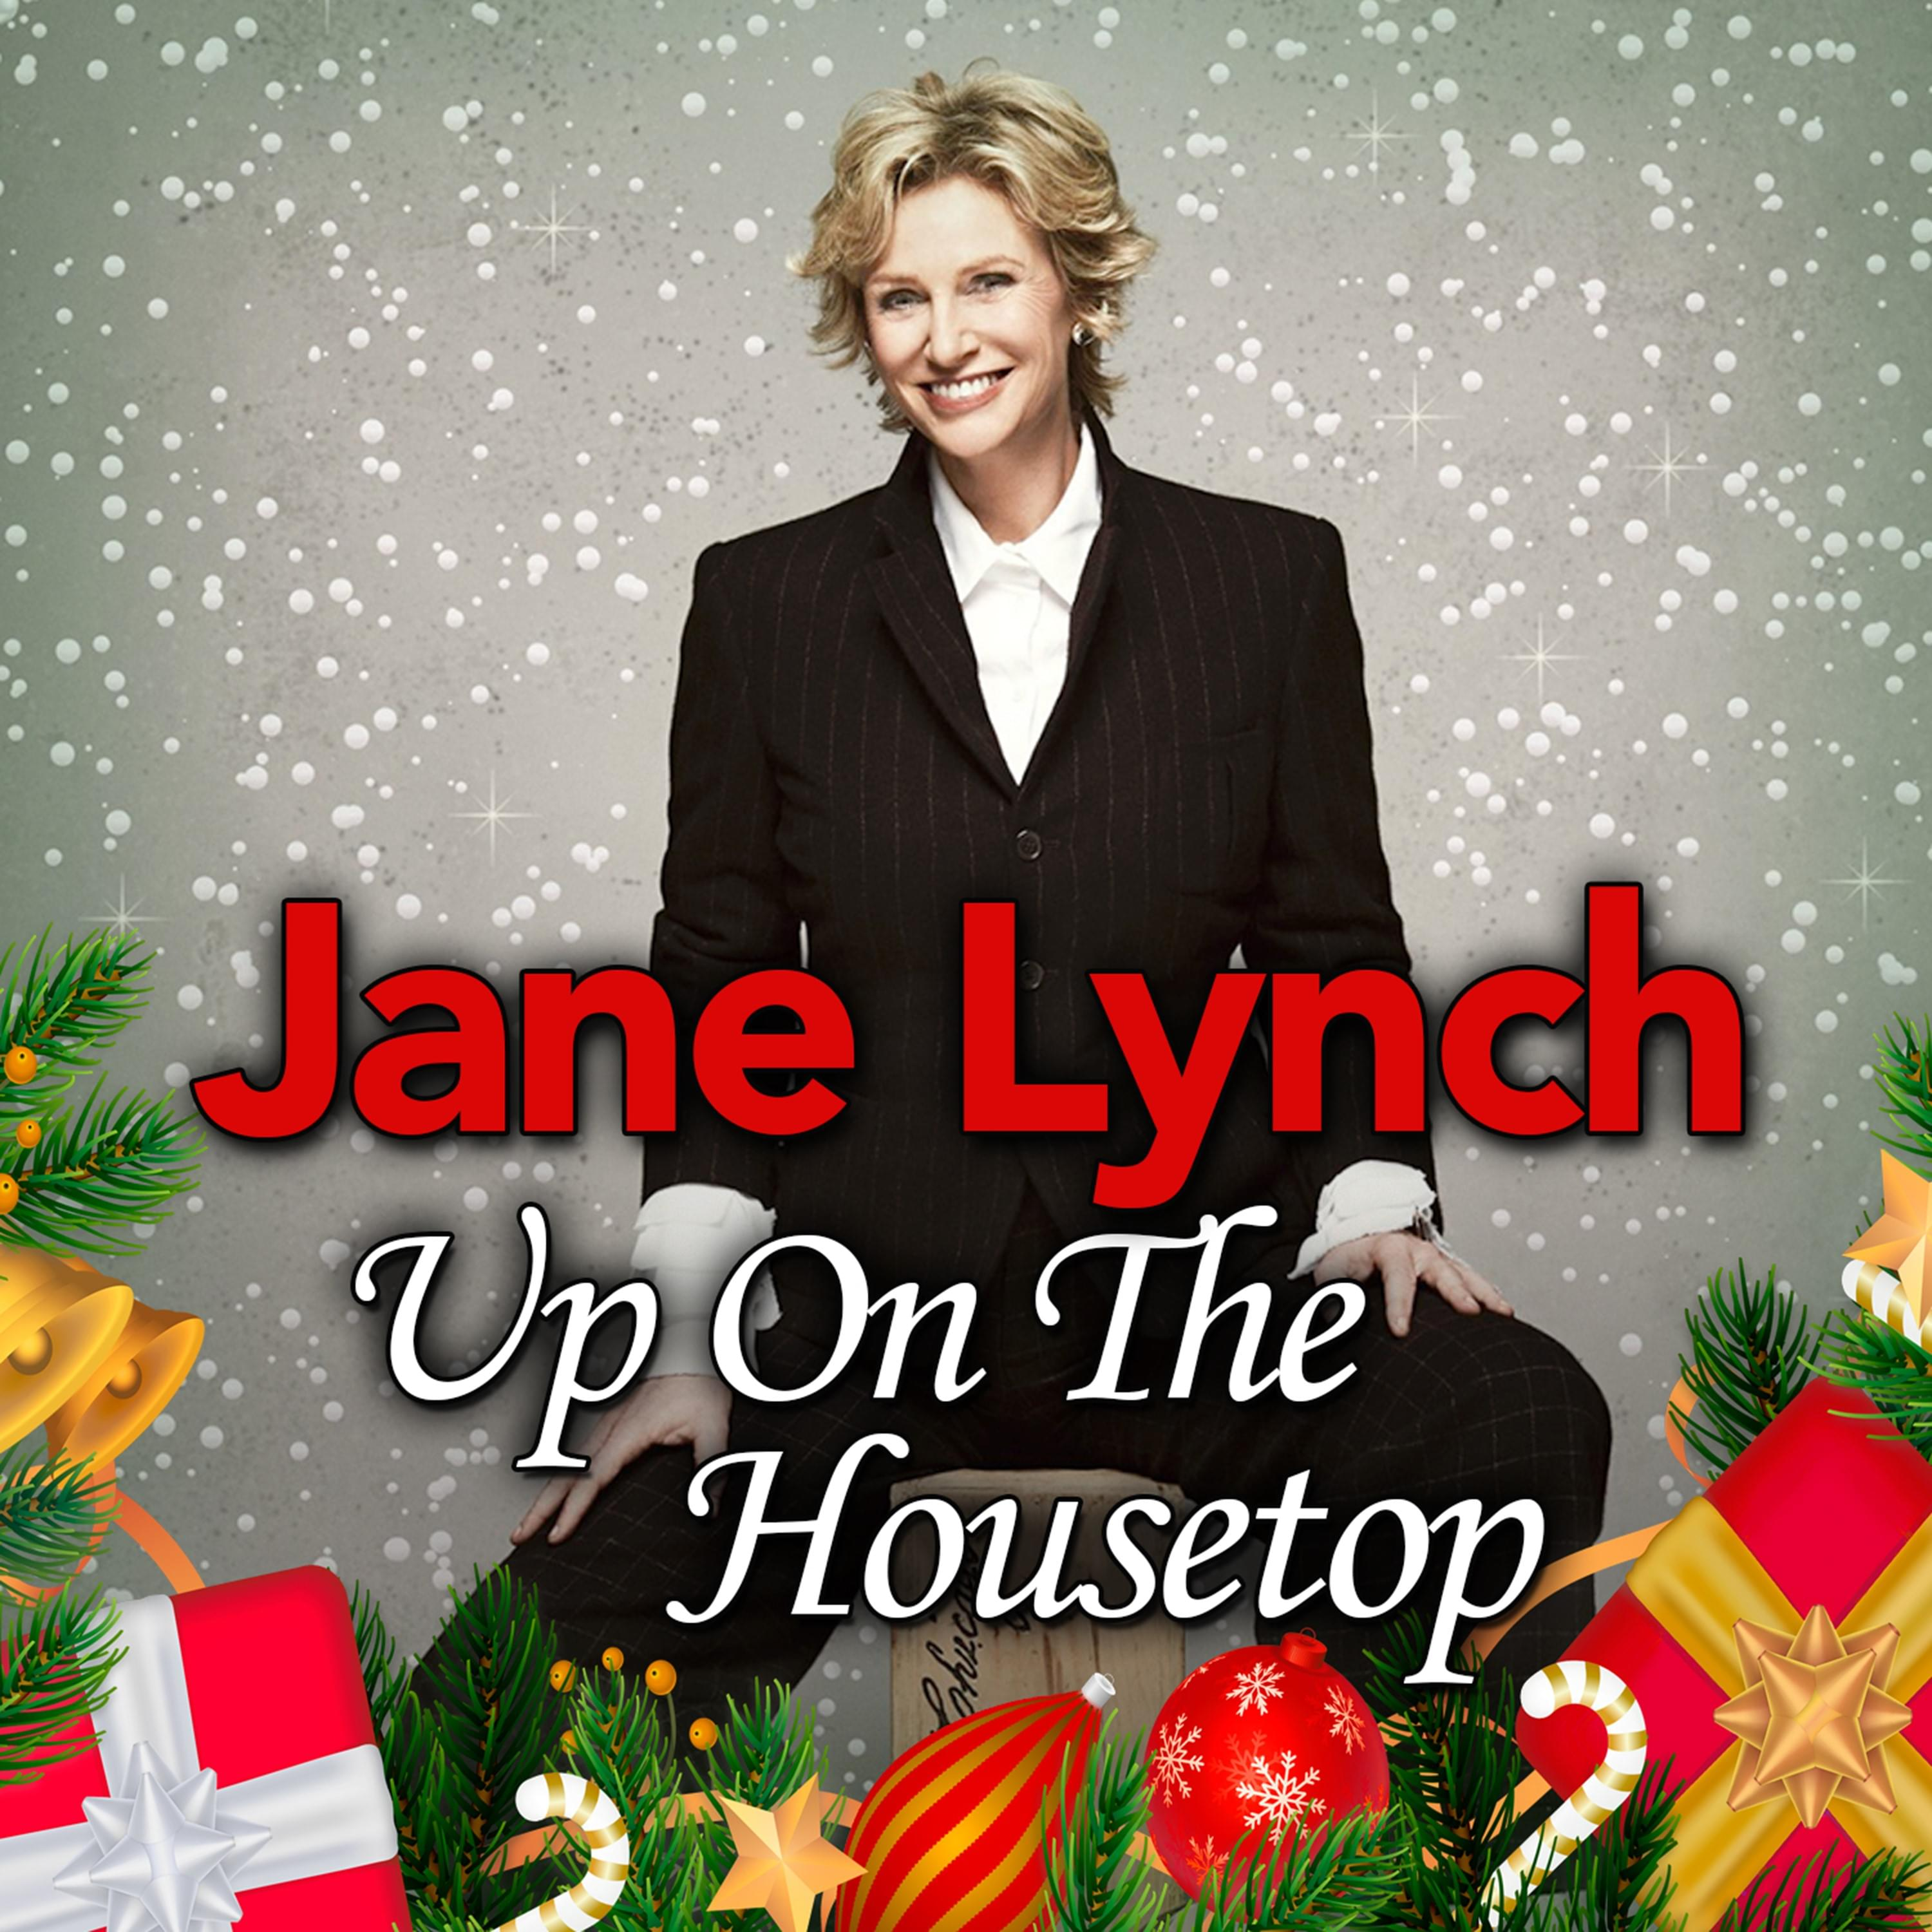 JANE LYNCH with Heather & Steve on Lite 105